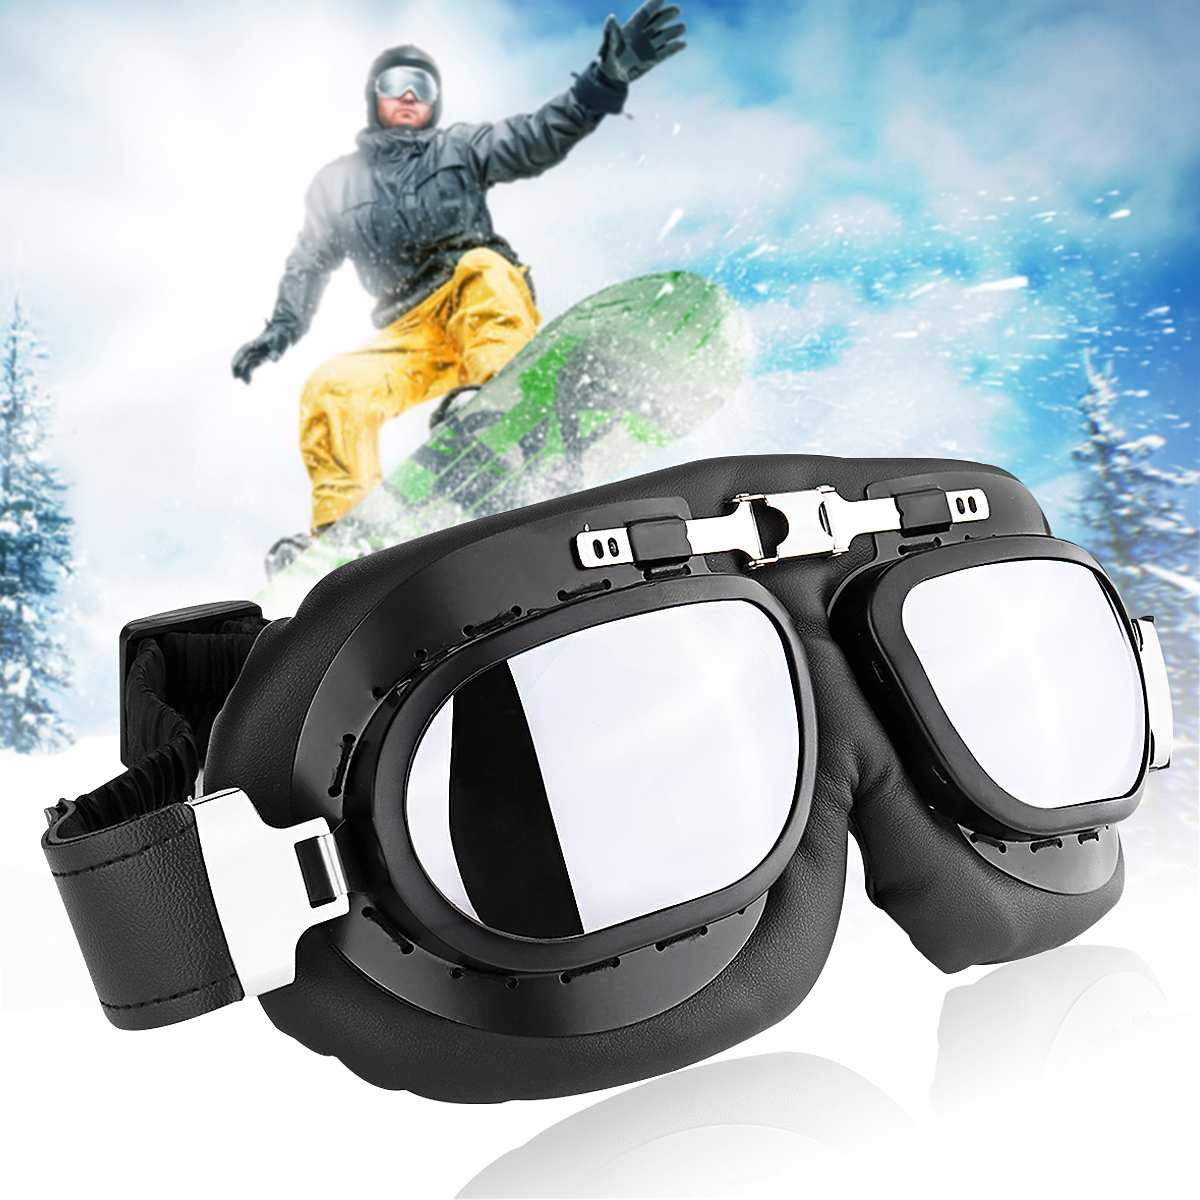 Windproof Motorcycle Riding Goggles Retro PC Lens Motorbike Ski Bike Glasses Motocross Classic Goggles For Harley Cafe Racer|Motorcycle Glasses| |  - title=